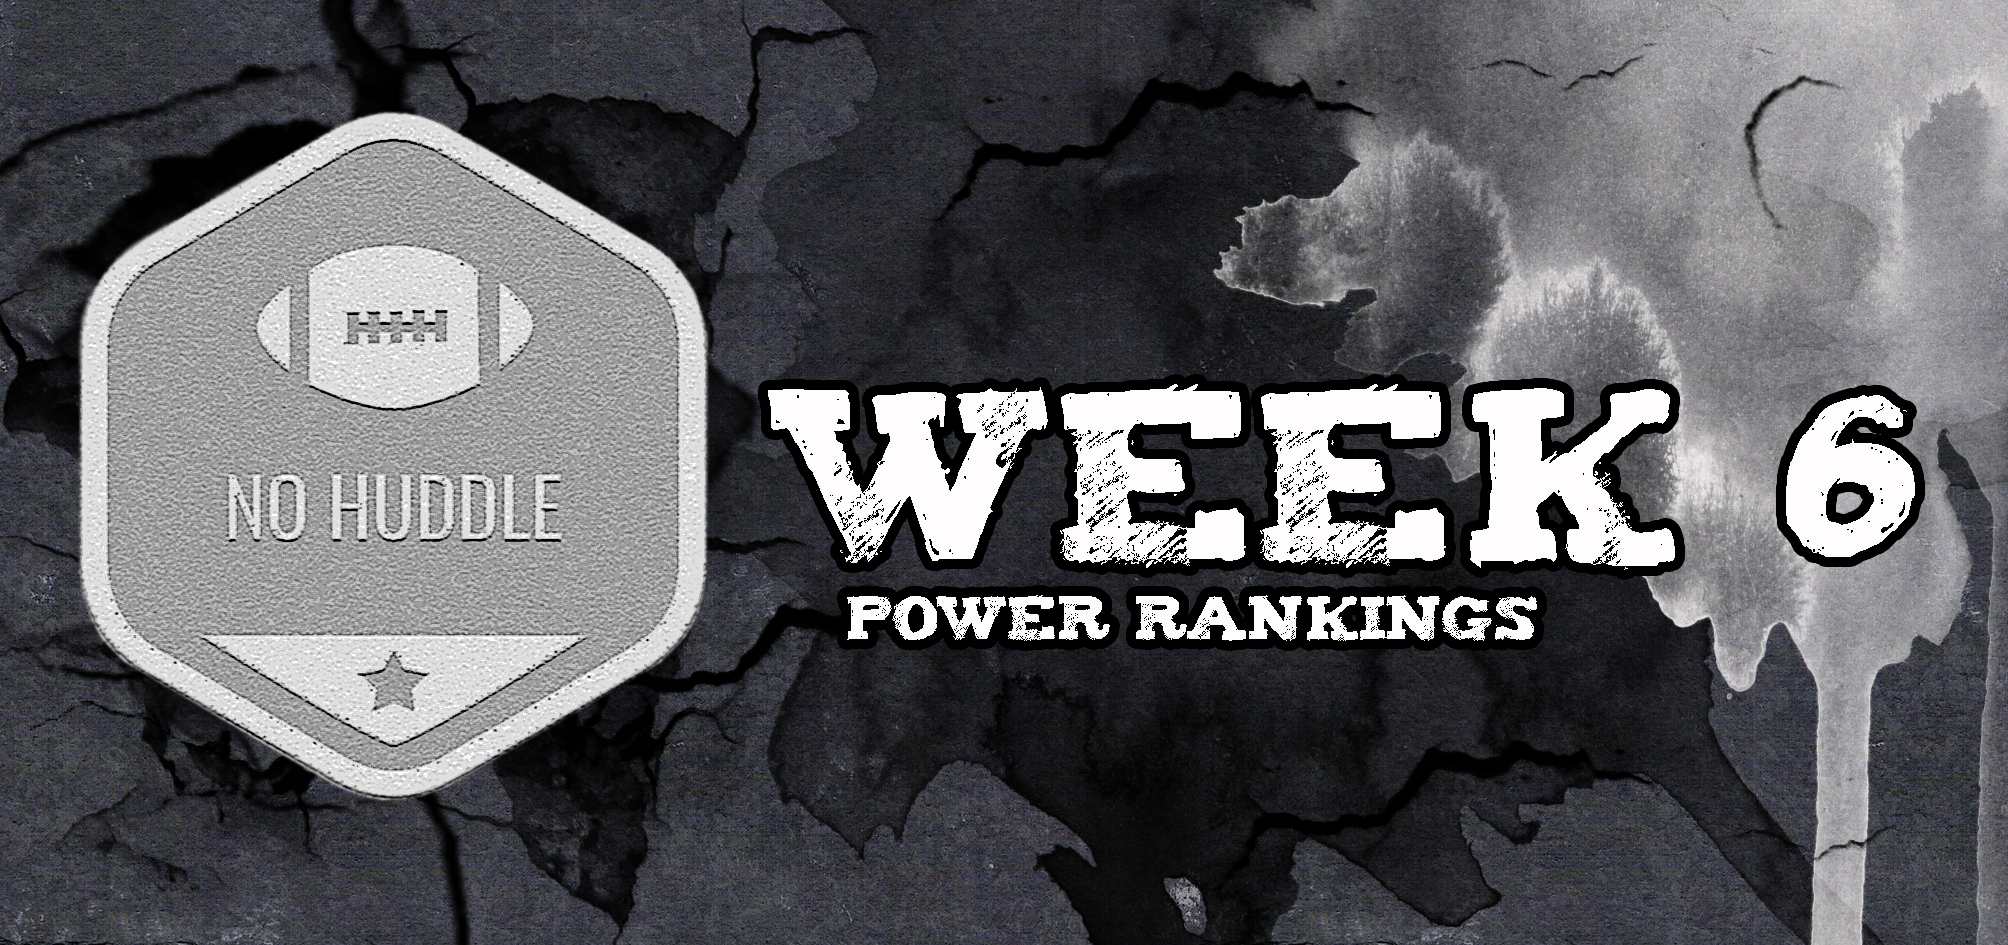 Power Rankings: Semana 6